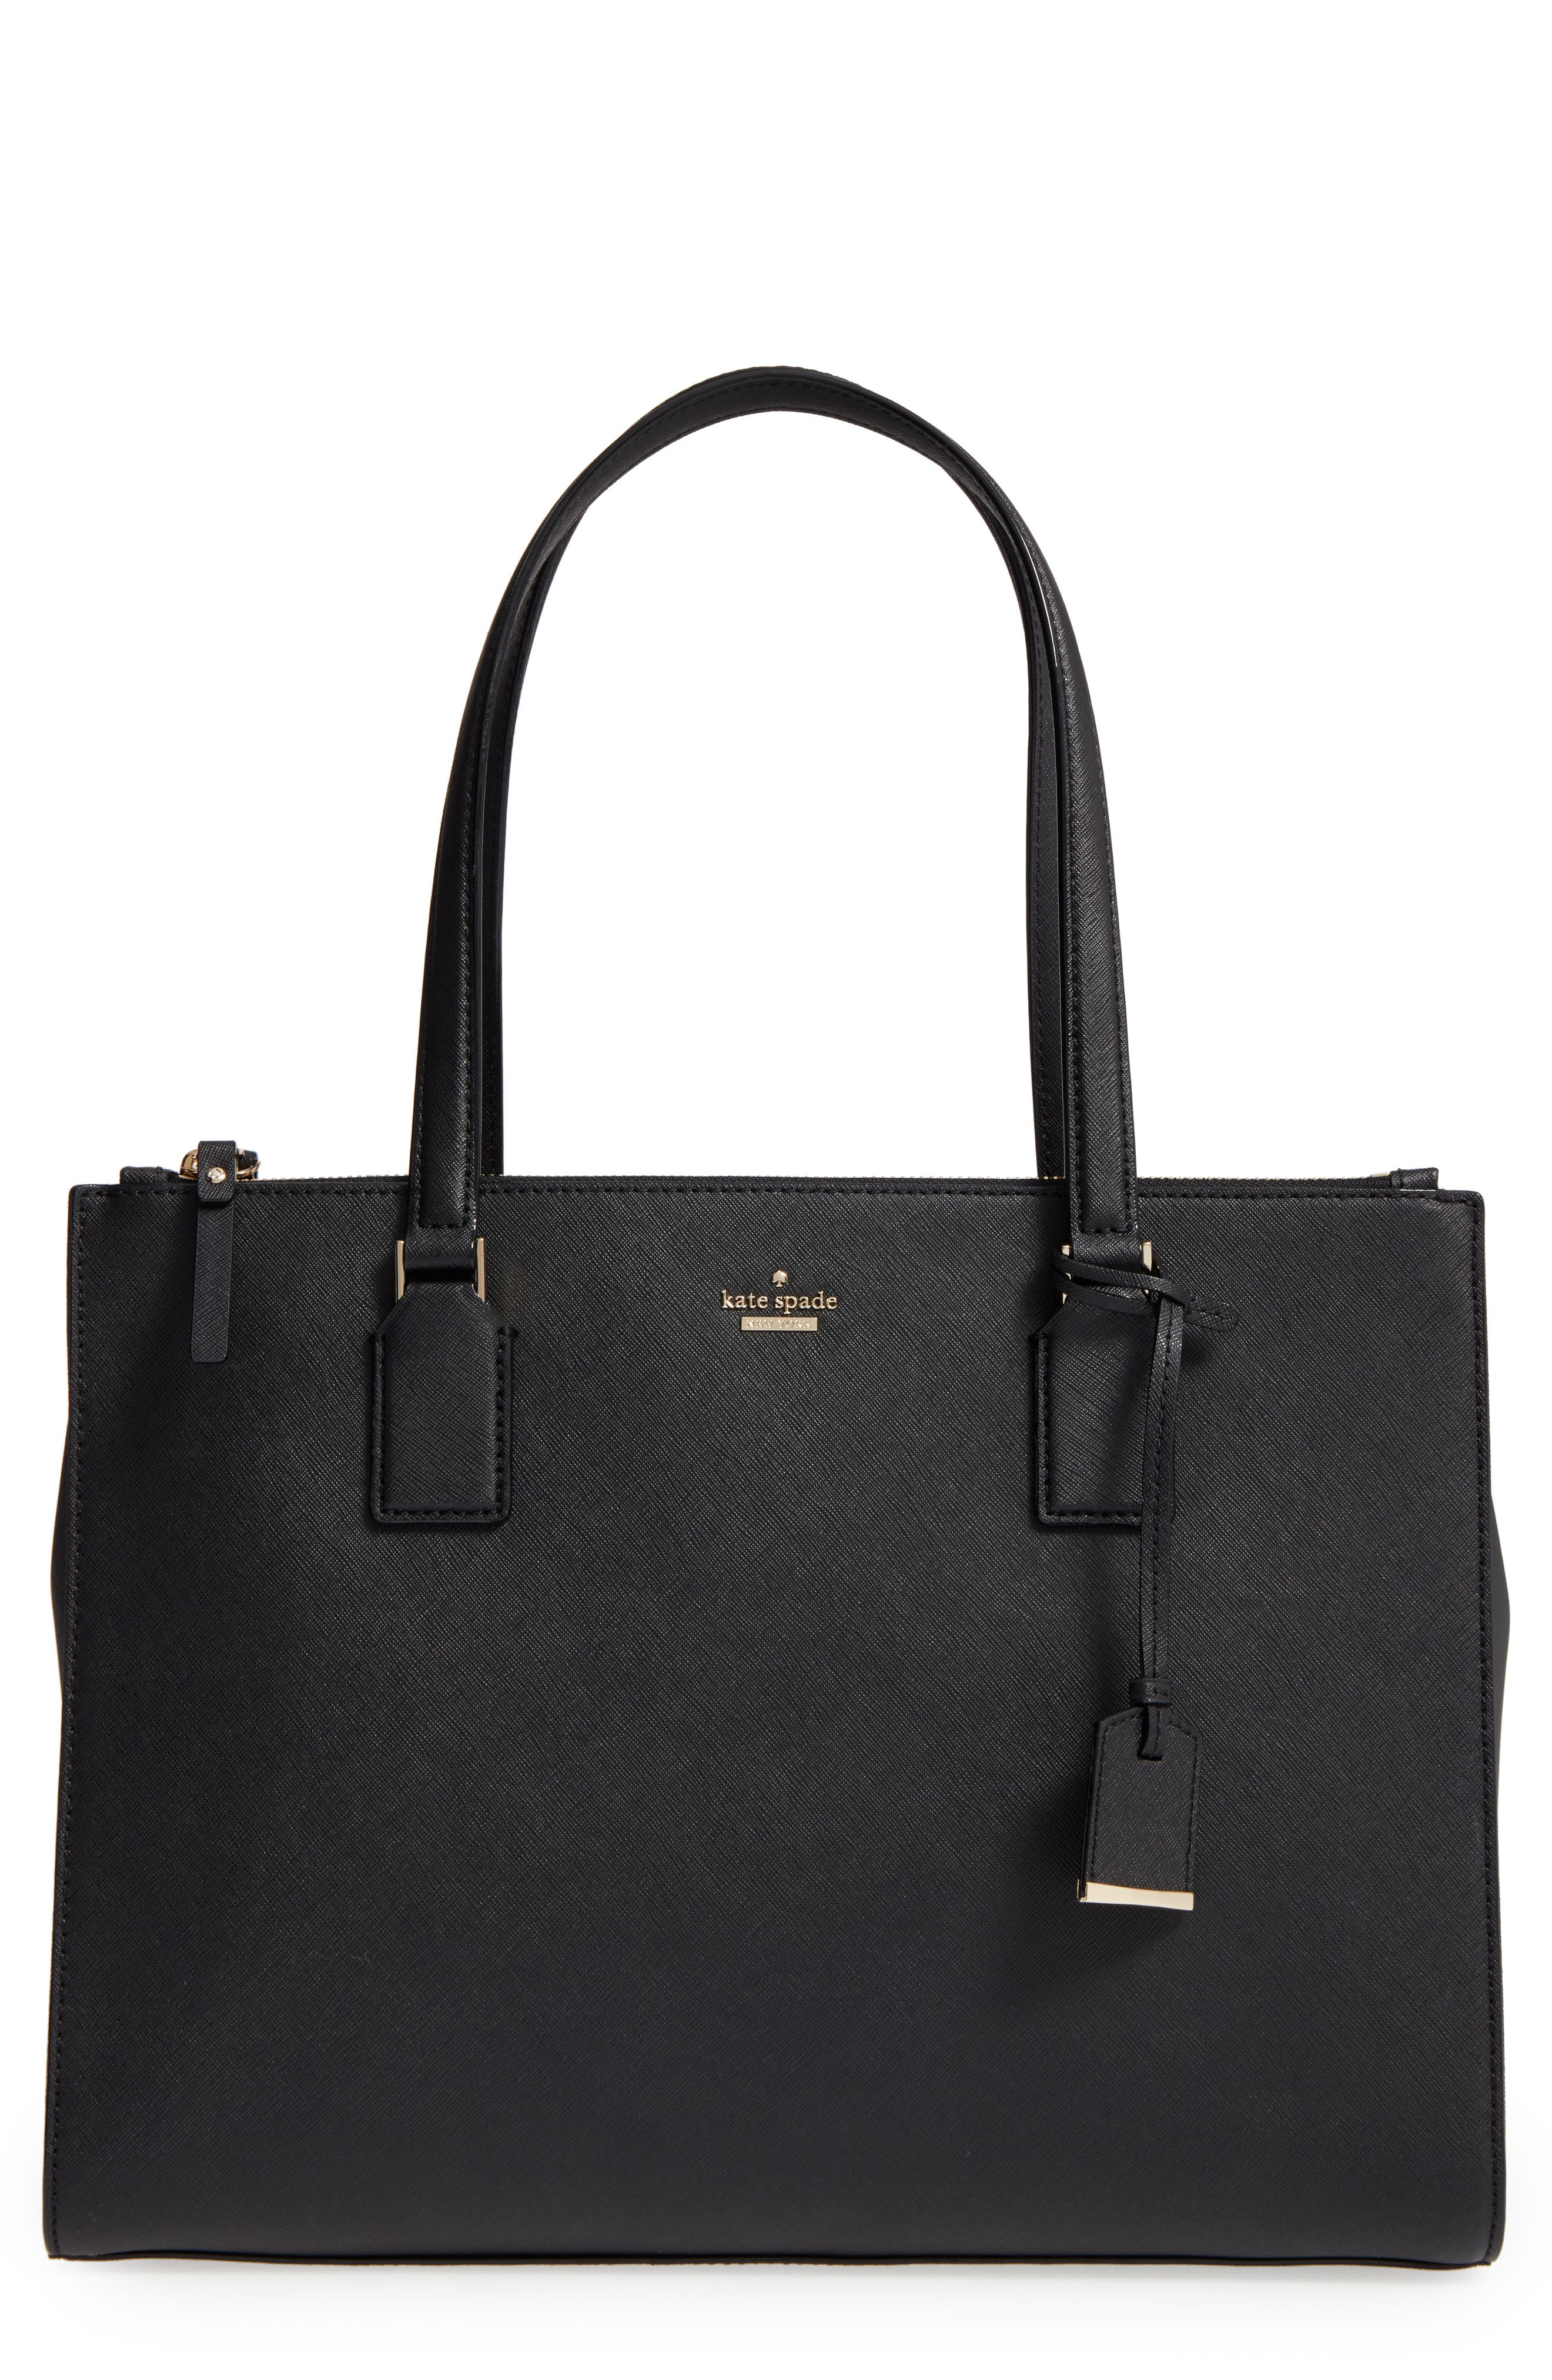 cameron street - jensen leather tote,                         Main,                         color, 001